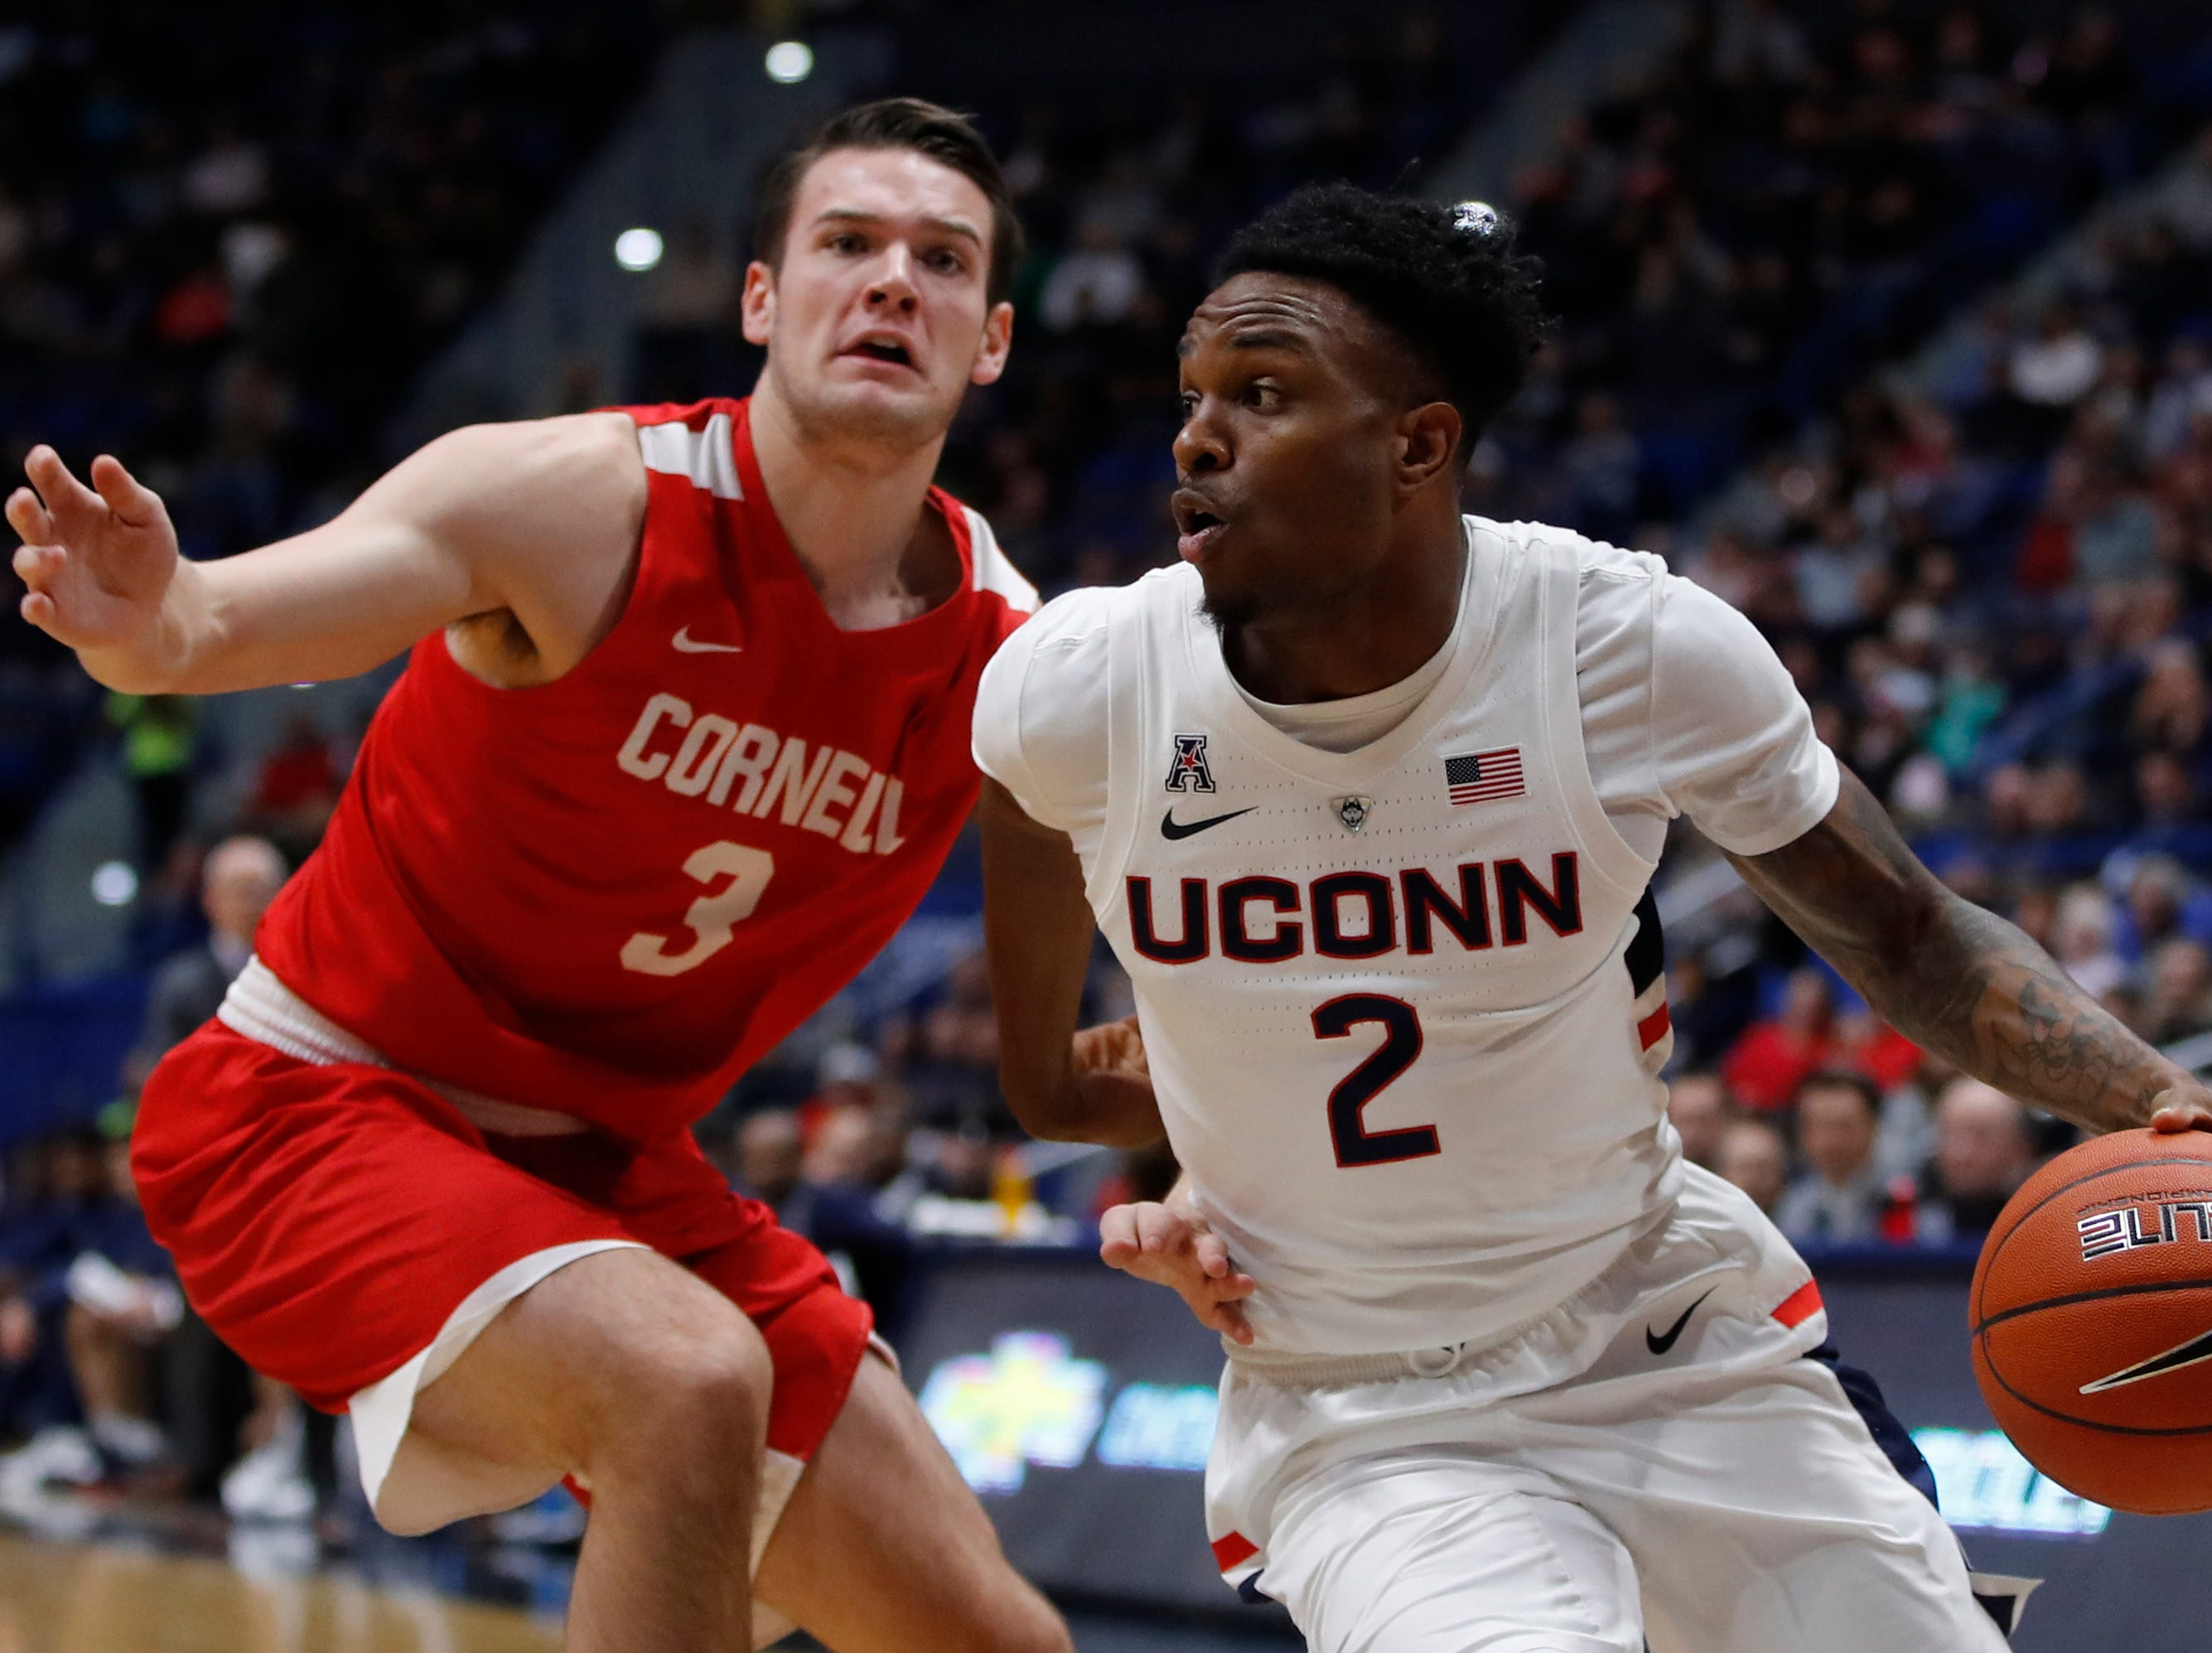 Nov 20, 2018; Storrs, CT, USA; Connecticut Huskies guard Tarin Smith (2) drives the ball against Cornell Big Red forward Jimmy Boeheim (3) in the first half at XL Center. Mandatory Credit: David Butler II-USA TODAY Sports